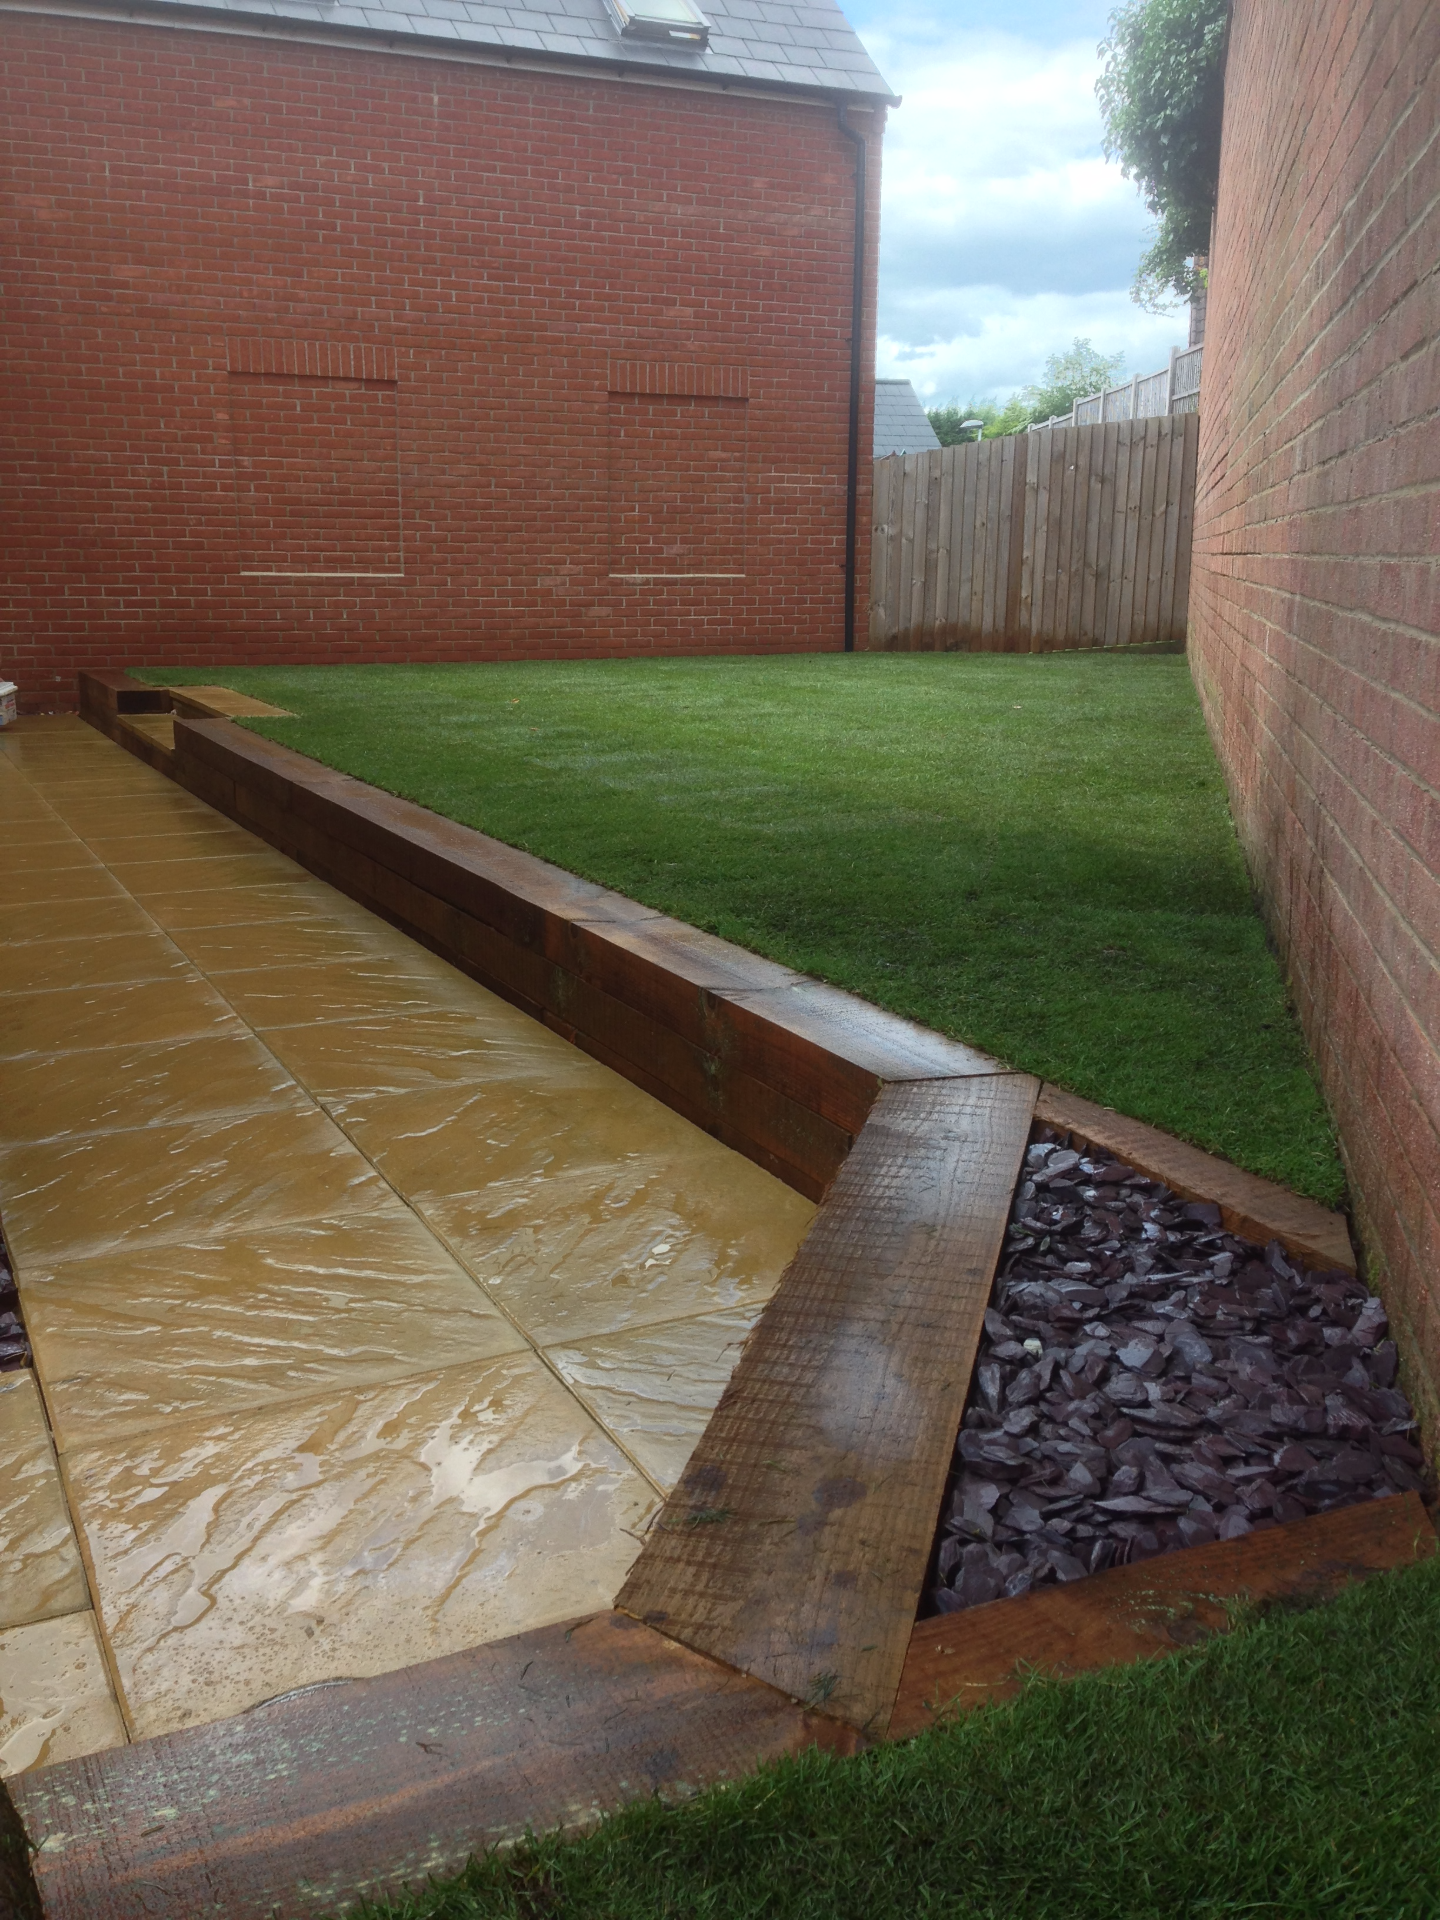 Sleeper wall, new lawn and patio